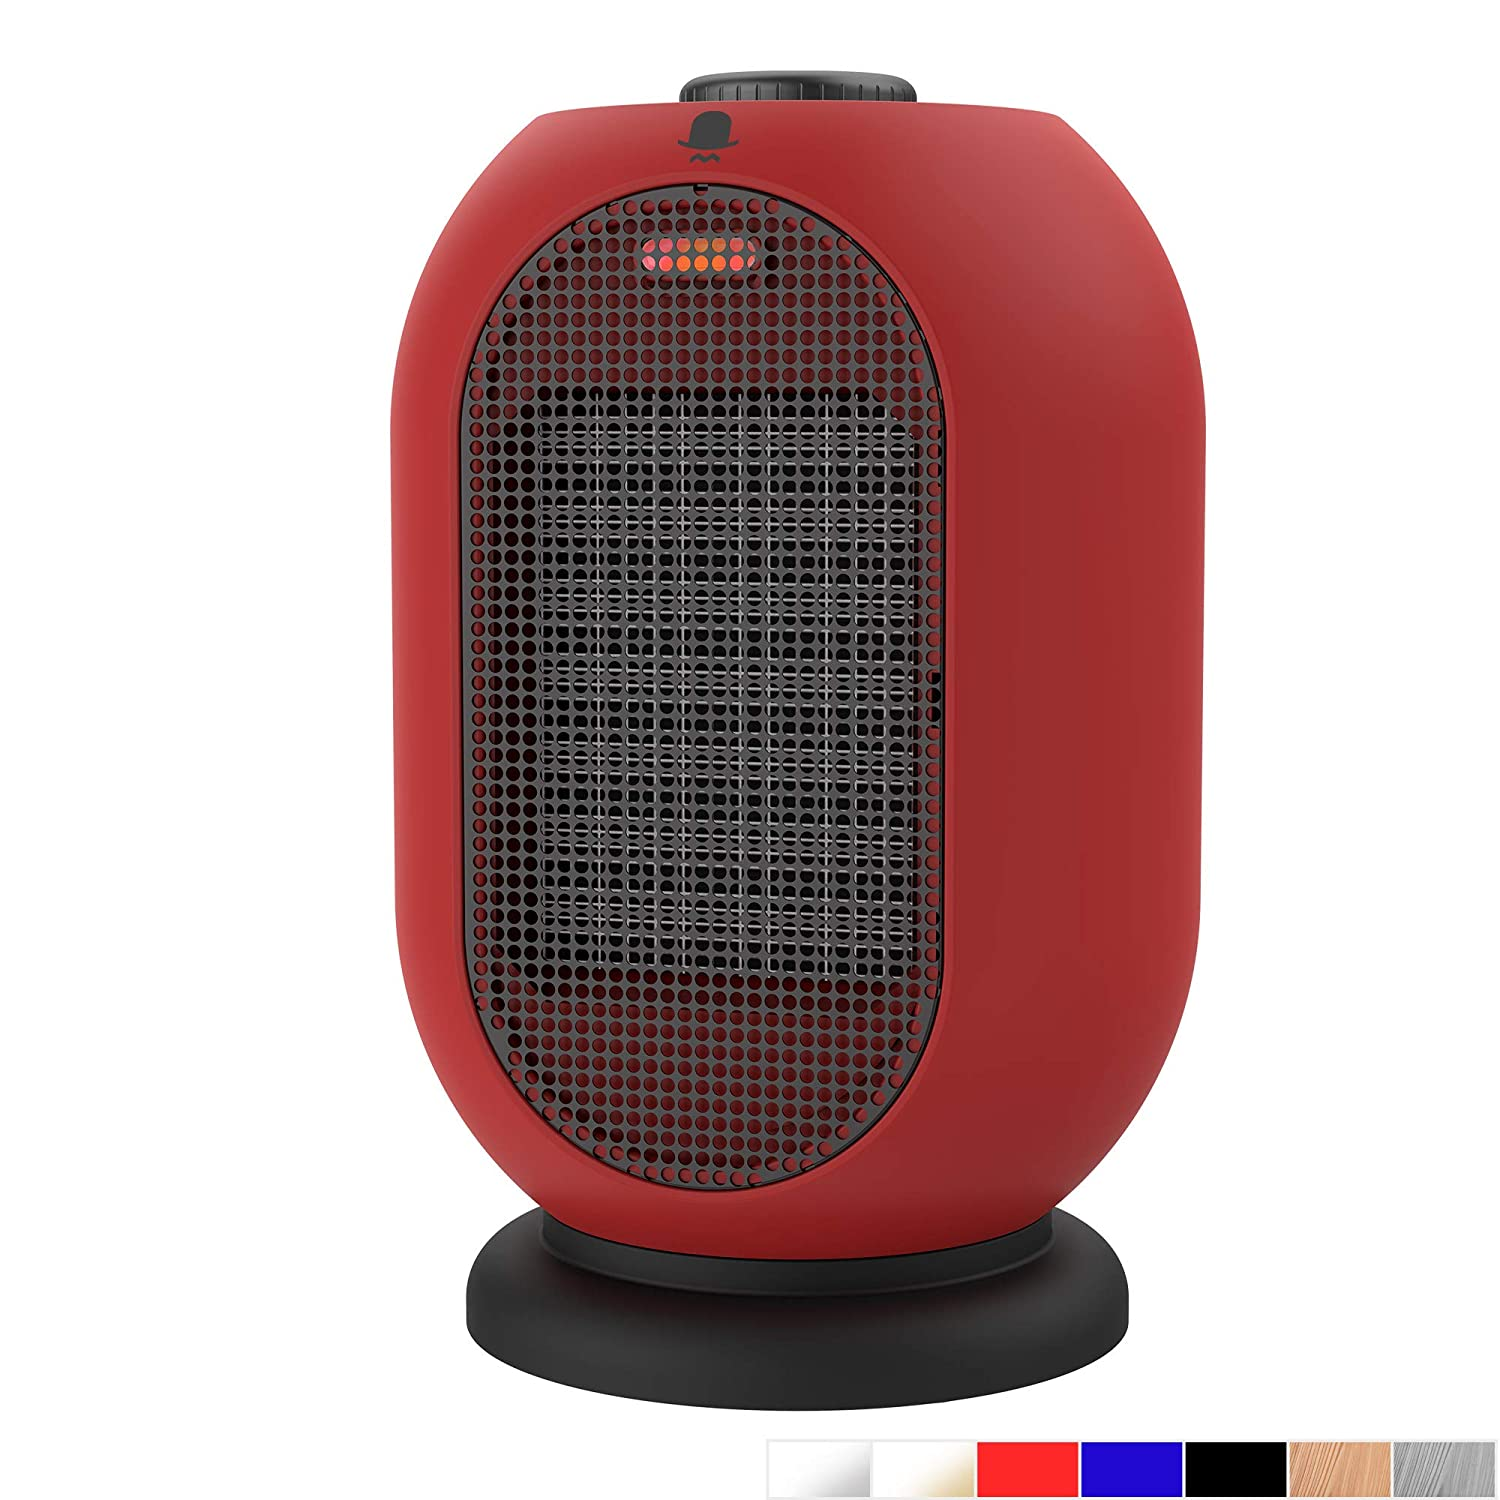 MRMIKKI Mini Space Heater, Small Electric Heater, 1200W 750W Heating Fan, Portable Ceramic Space Heater, with Tip-Over and Overheating Protection, Mini Indoor Heaters, Winter Gift, VH-12TQ-RB